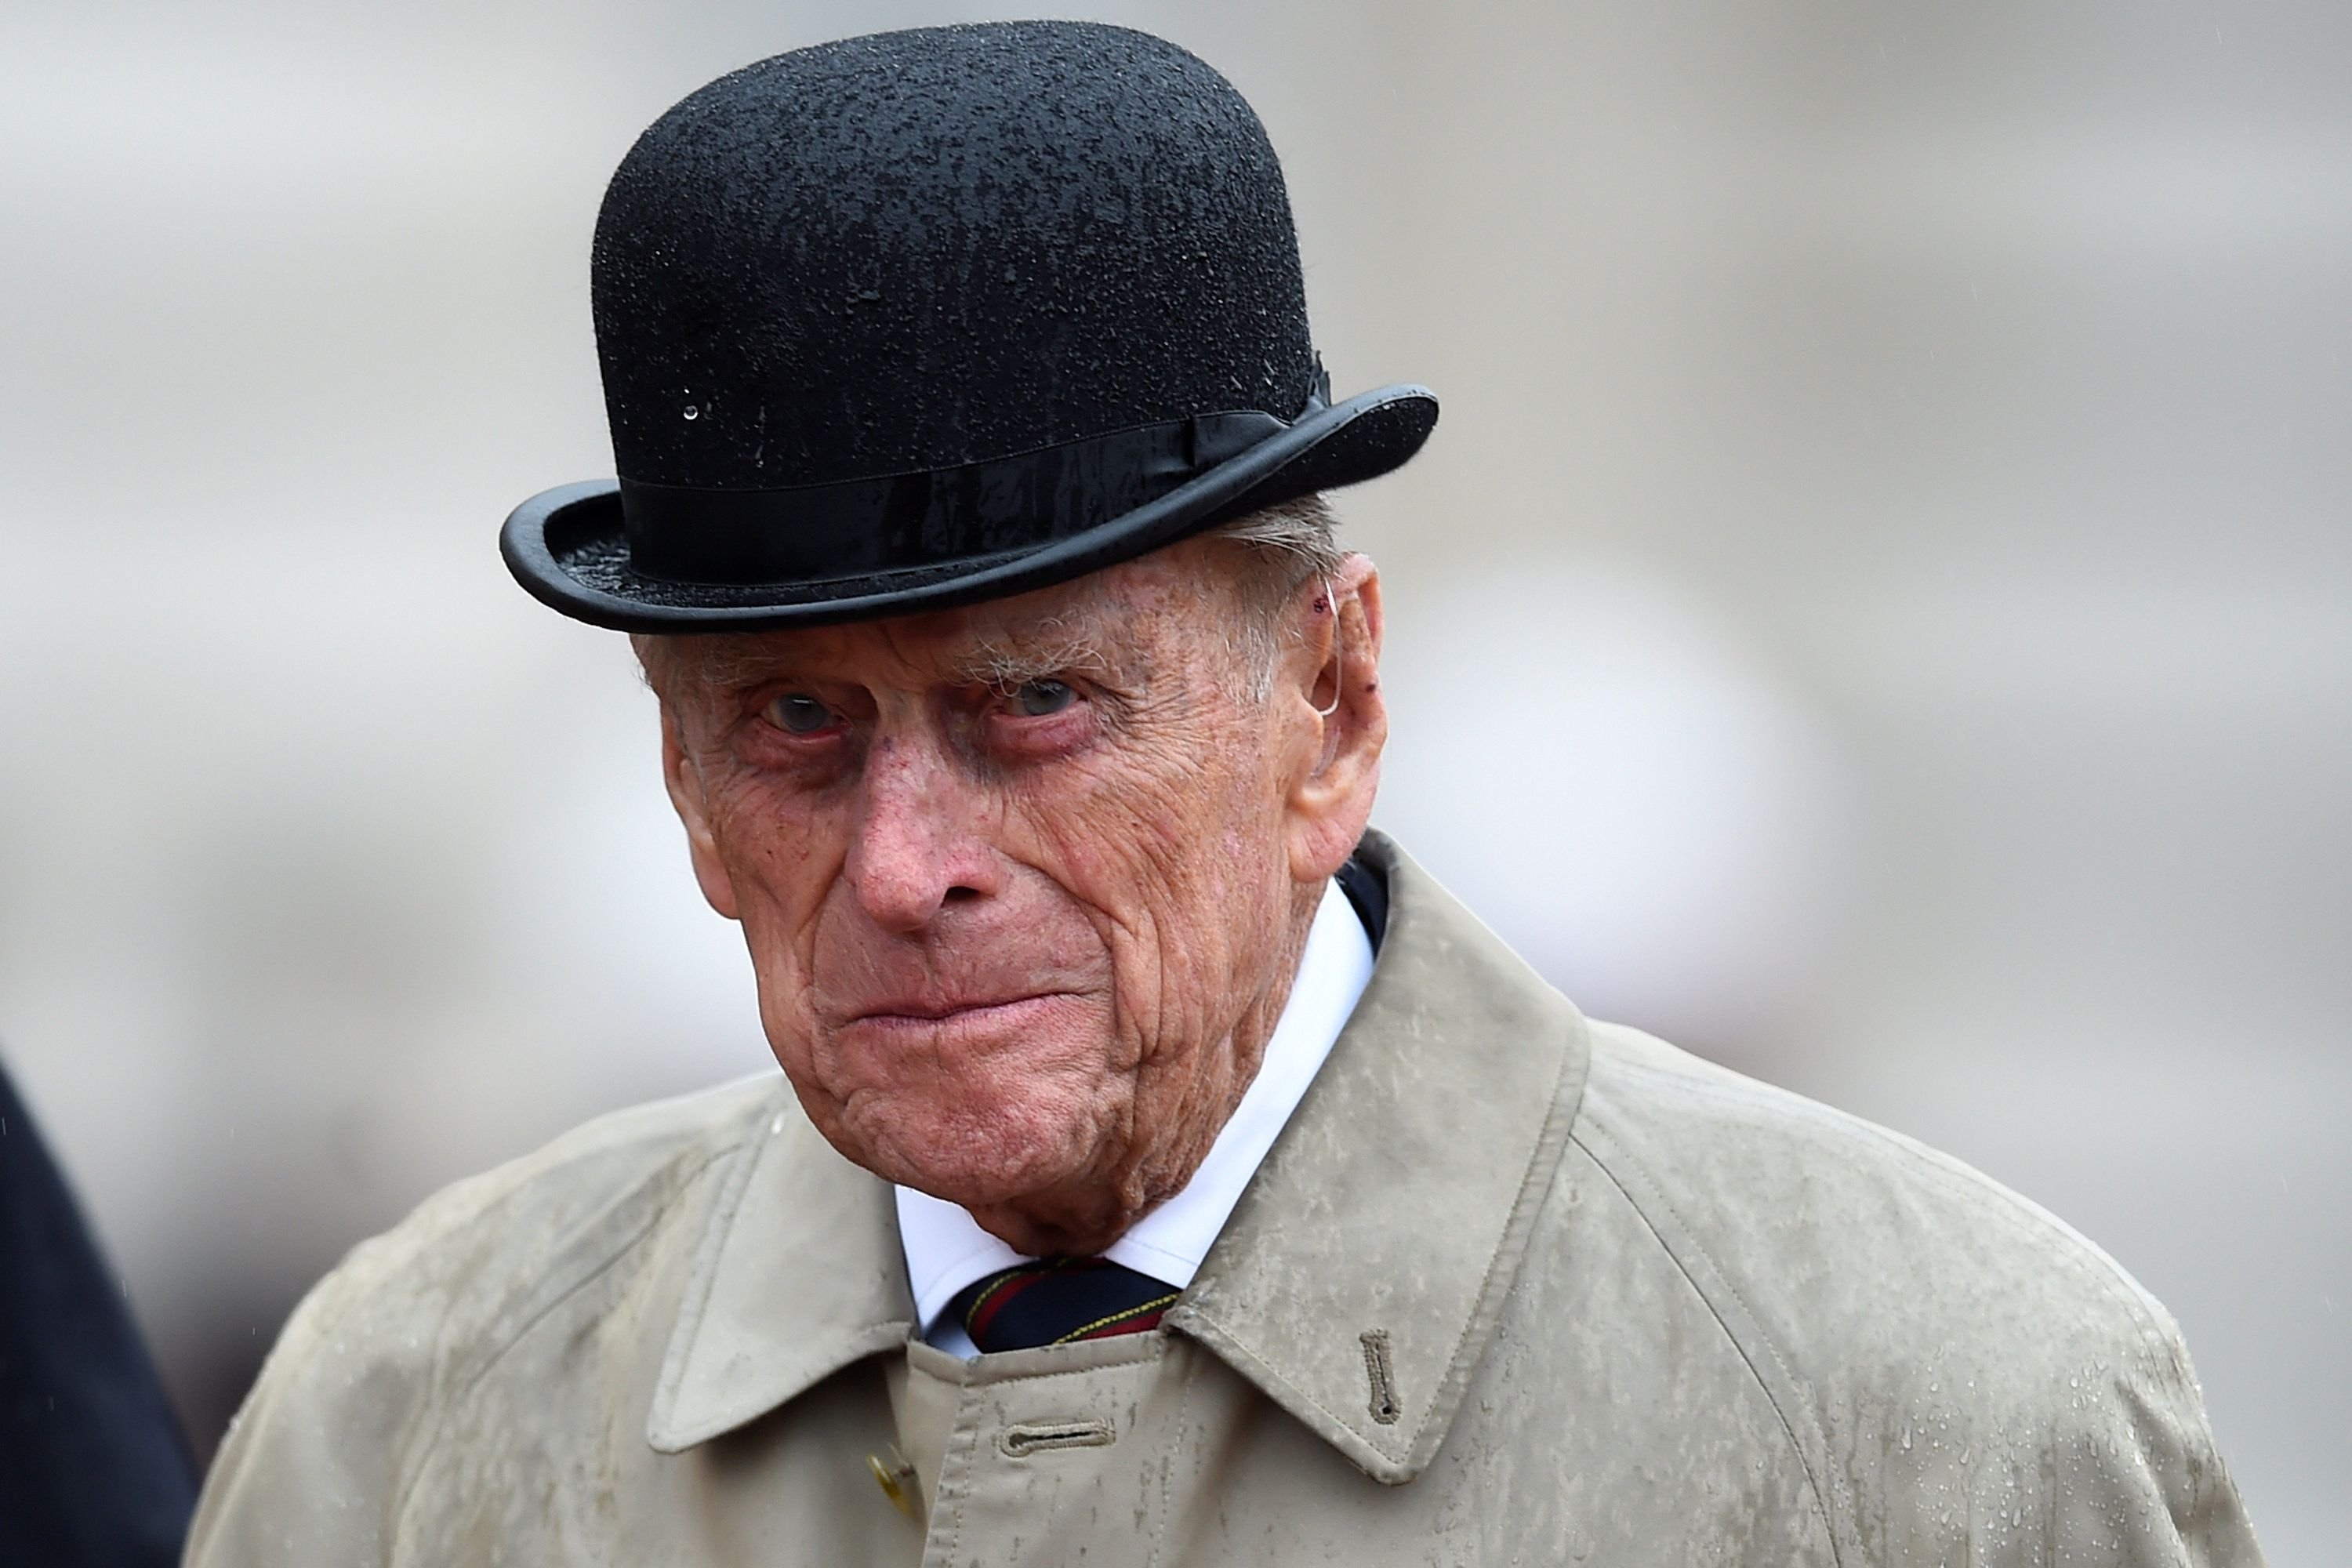 prince Philip, Duke of Edinburgh as Captain General, Royal Marines, making his final individual public engagement while attending a parade to mark the finale of the 1664 Global Challenge on the Buckingham Palace Forecourt in London, England | Photo: Hannah McKay - WPA Pool/Getty Images